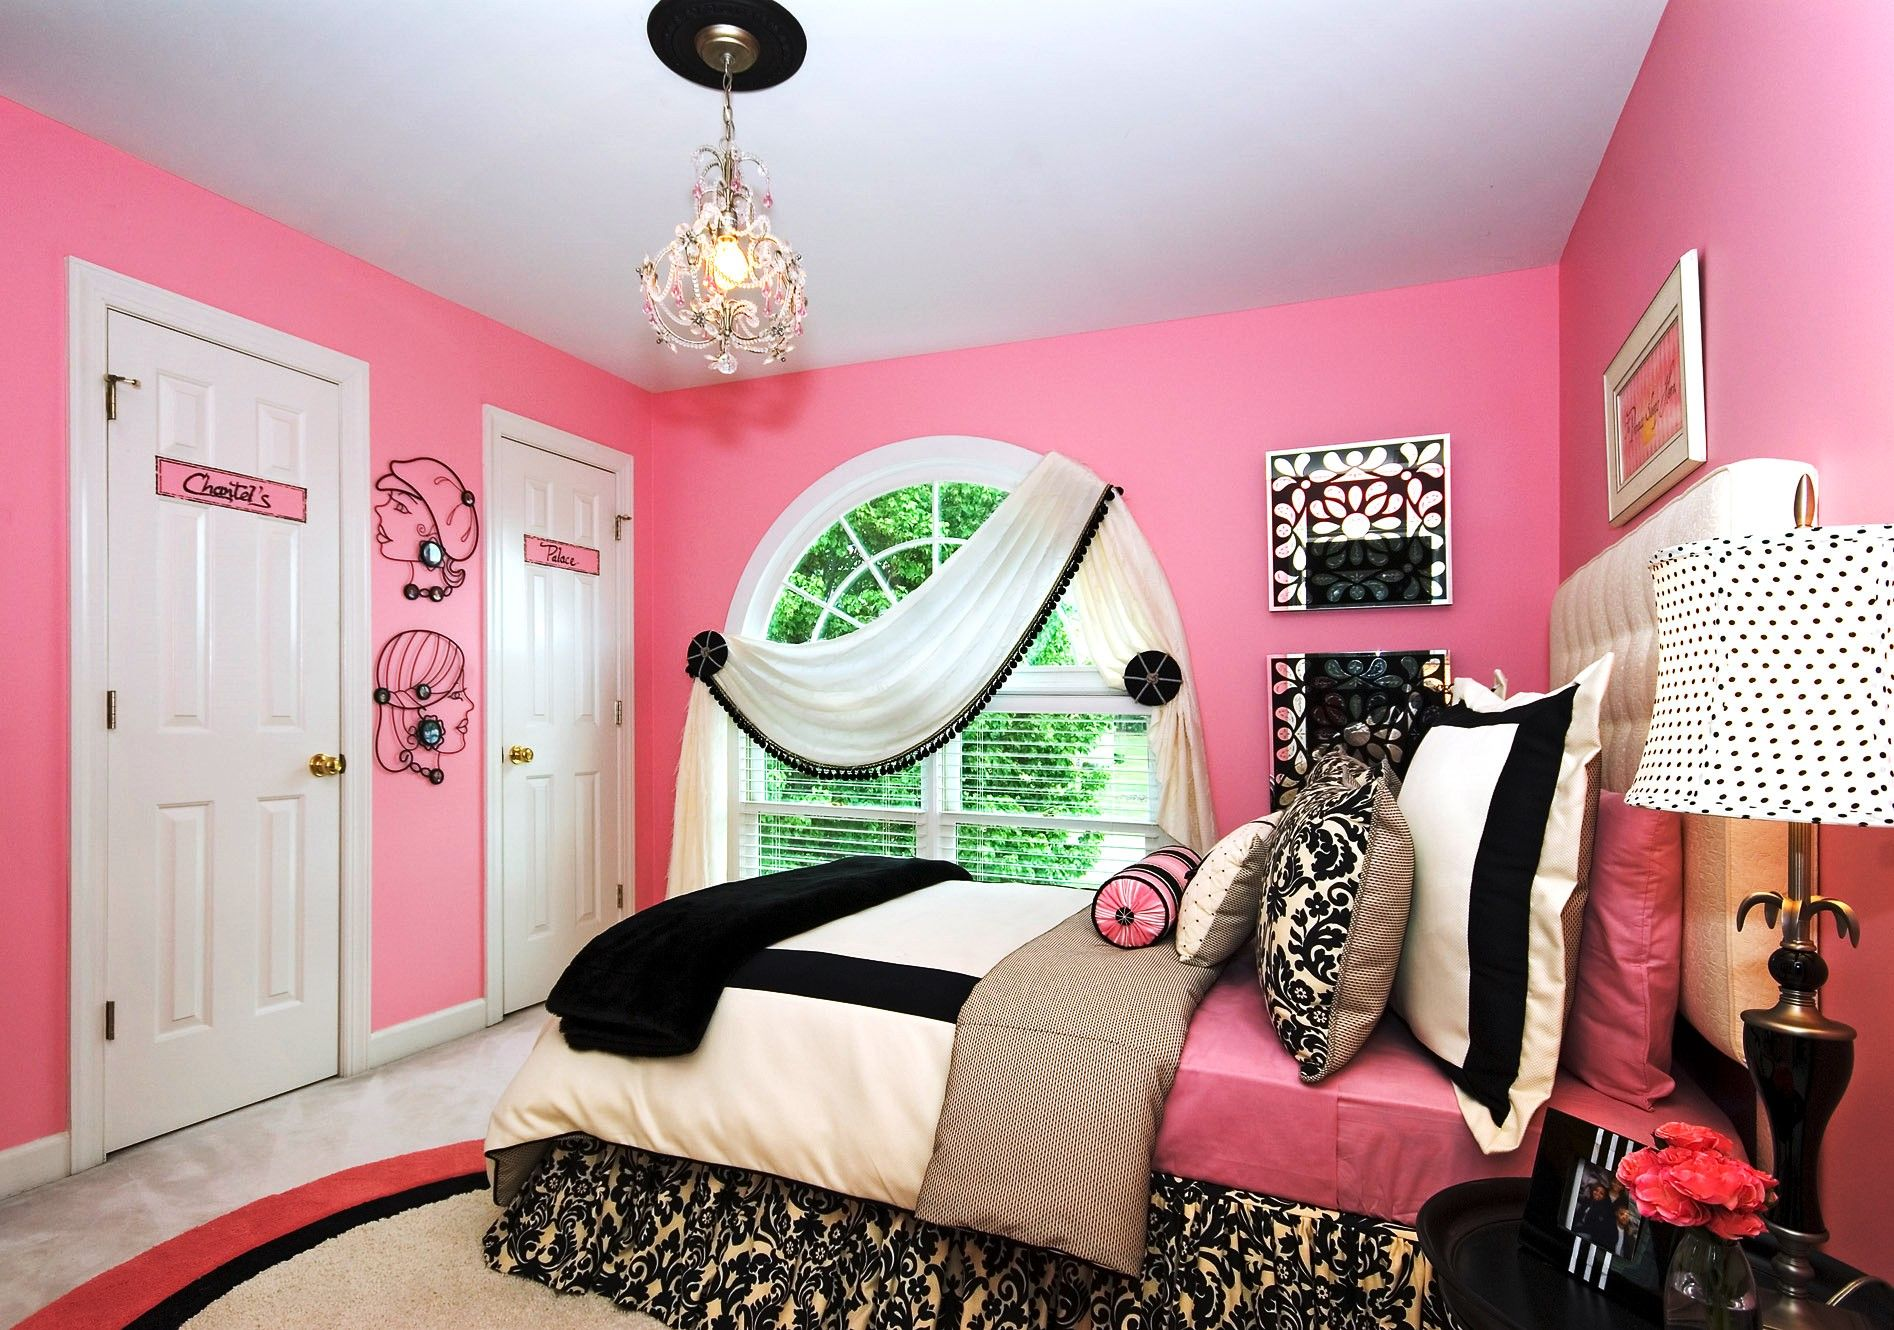 Beautiful Bedroom Designs For Teenage Girls   Beautiful Tween Girl Room  Ideas With Teenage Girl Bedroom Designs. Girl Bedroom Paint Ideas Purple Wall Color With Pink Amster